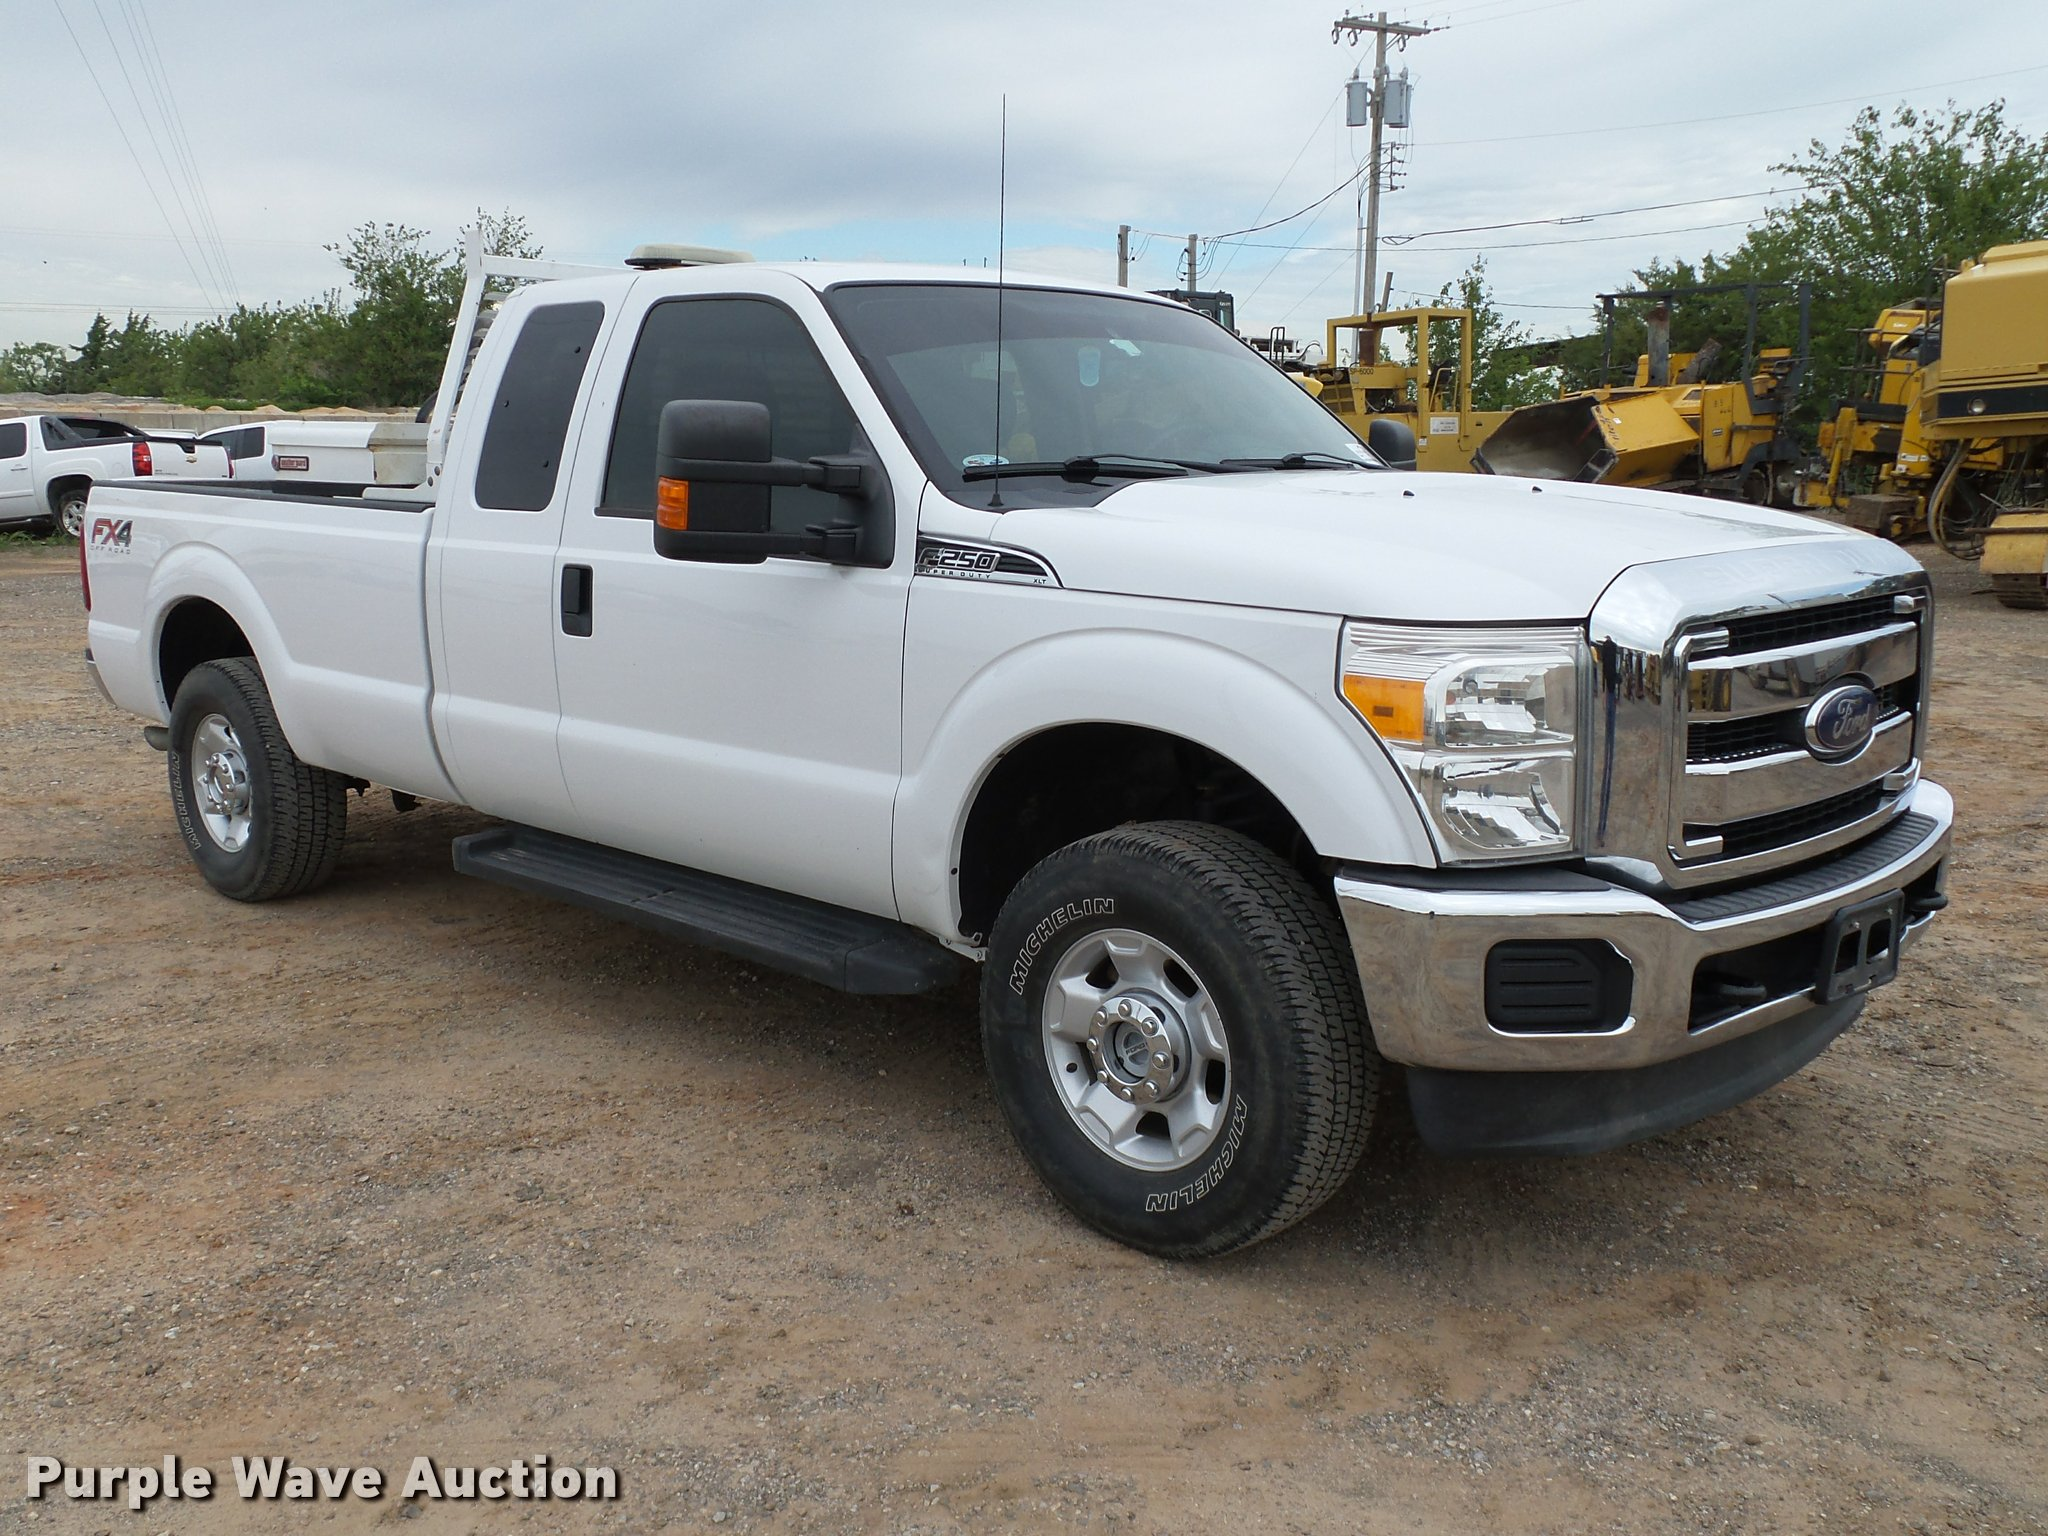 2012 Ford F250 Super Duty XLT FX4 SuperCab pickup truck